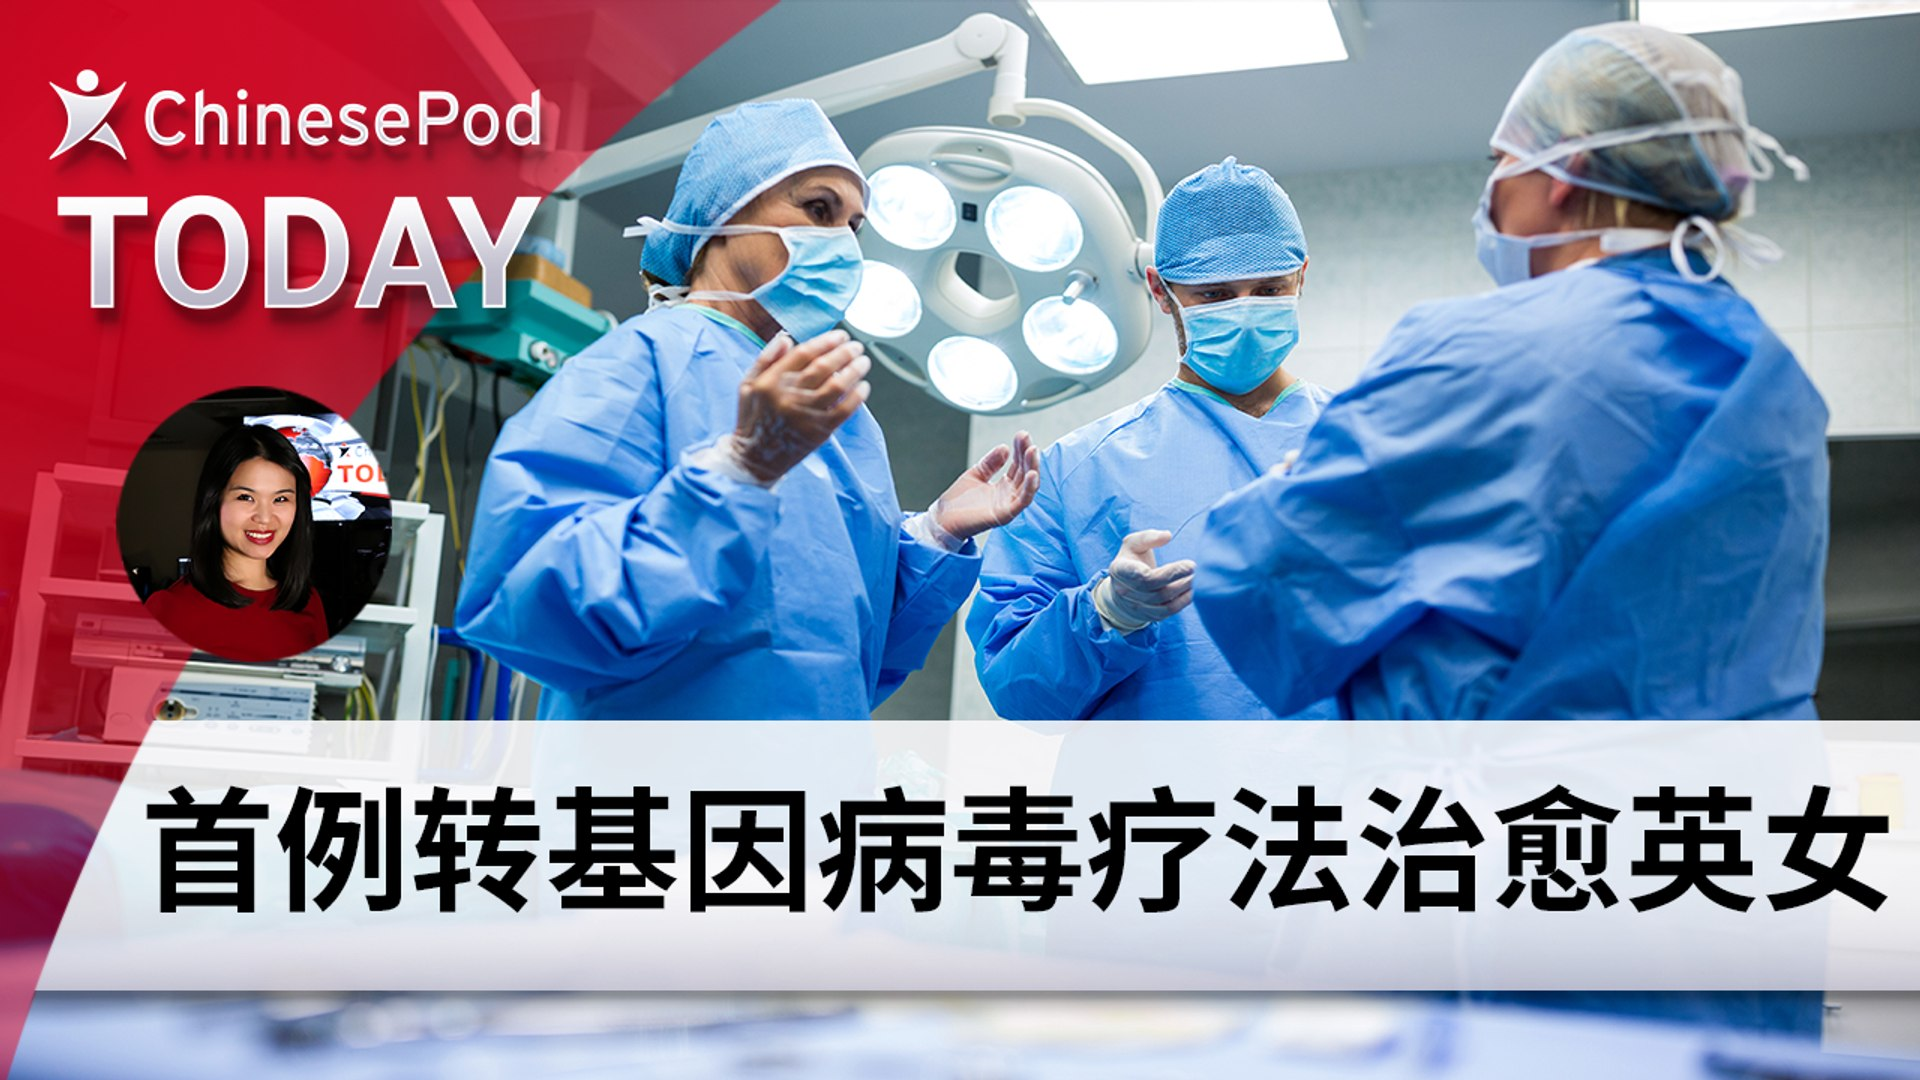 ChinesePod Today: First-Ever Genetically Modified Virus Treatment Saves British Teen (simp. characte